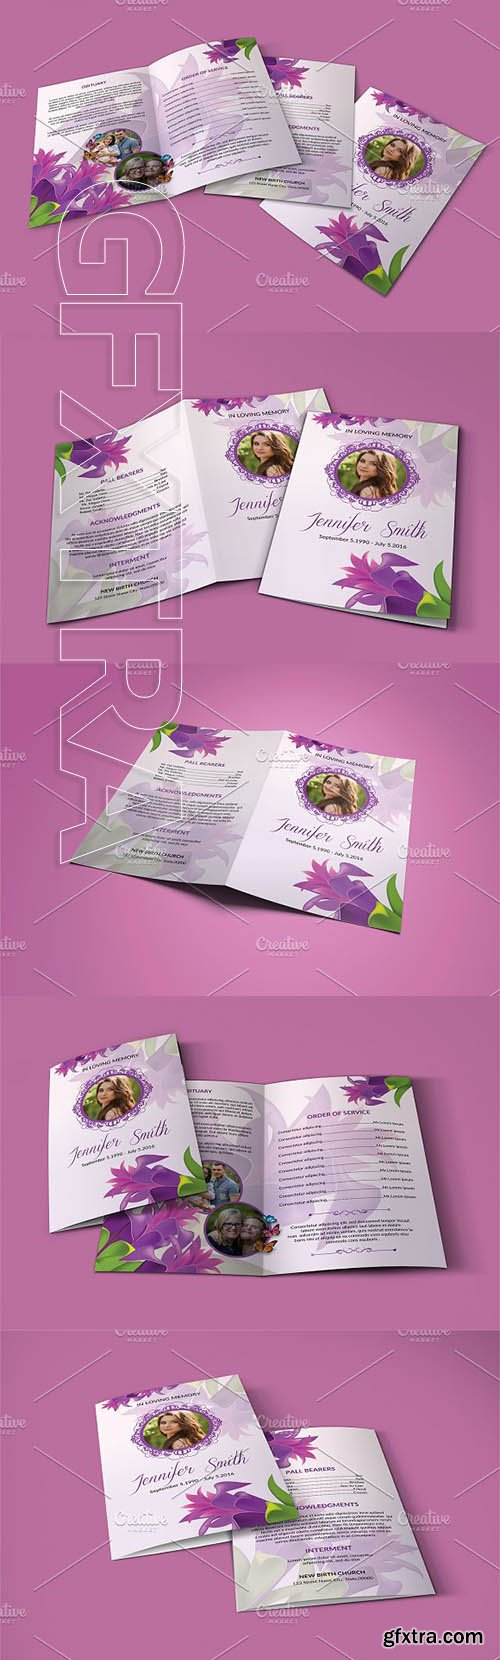 CreativeMarket - Funeral Program Template - V820 2884701